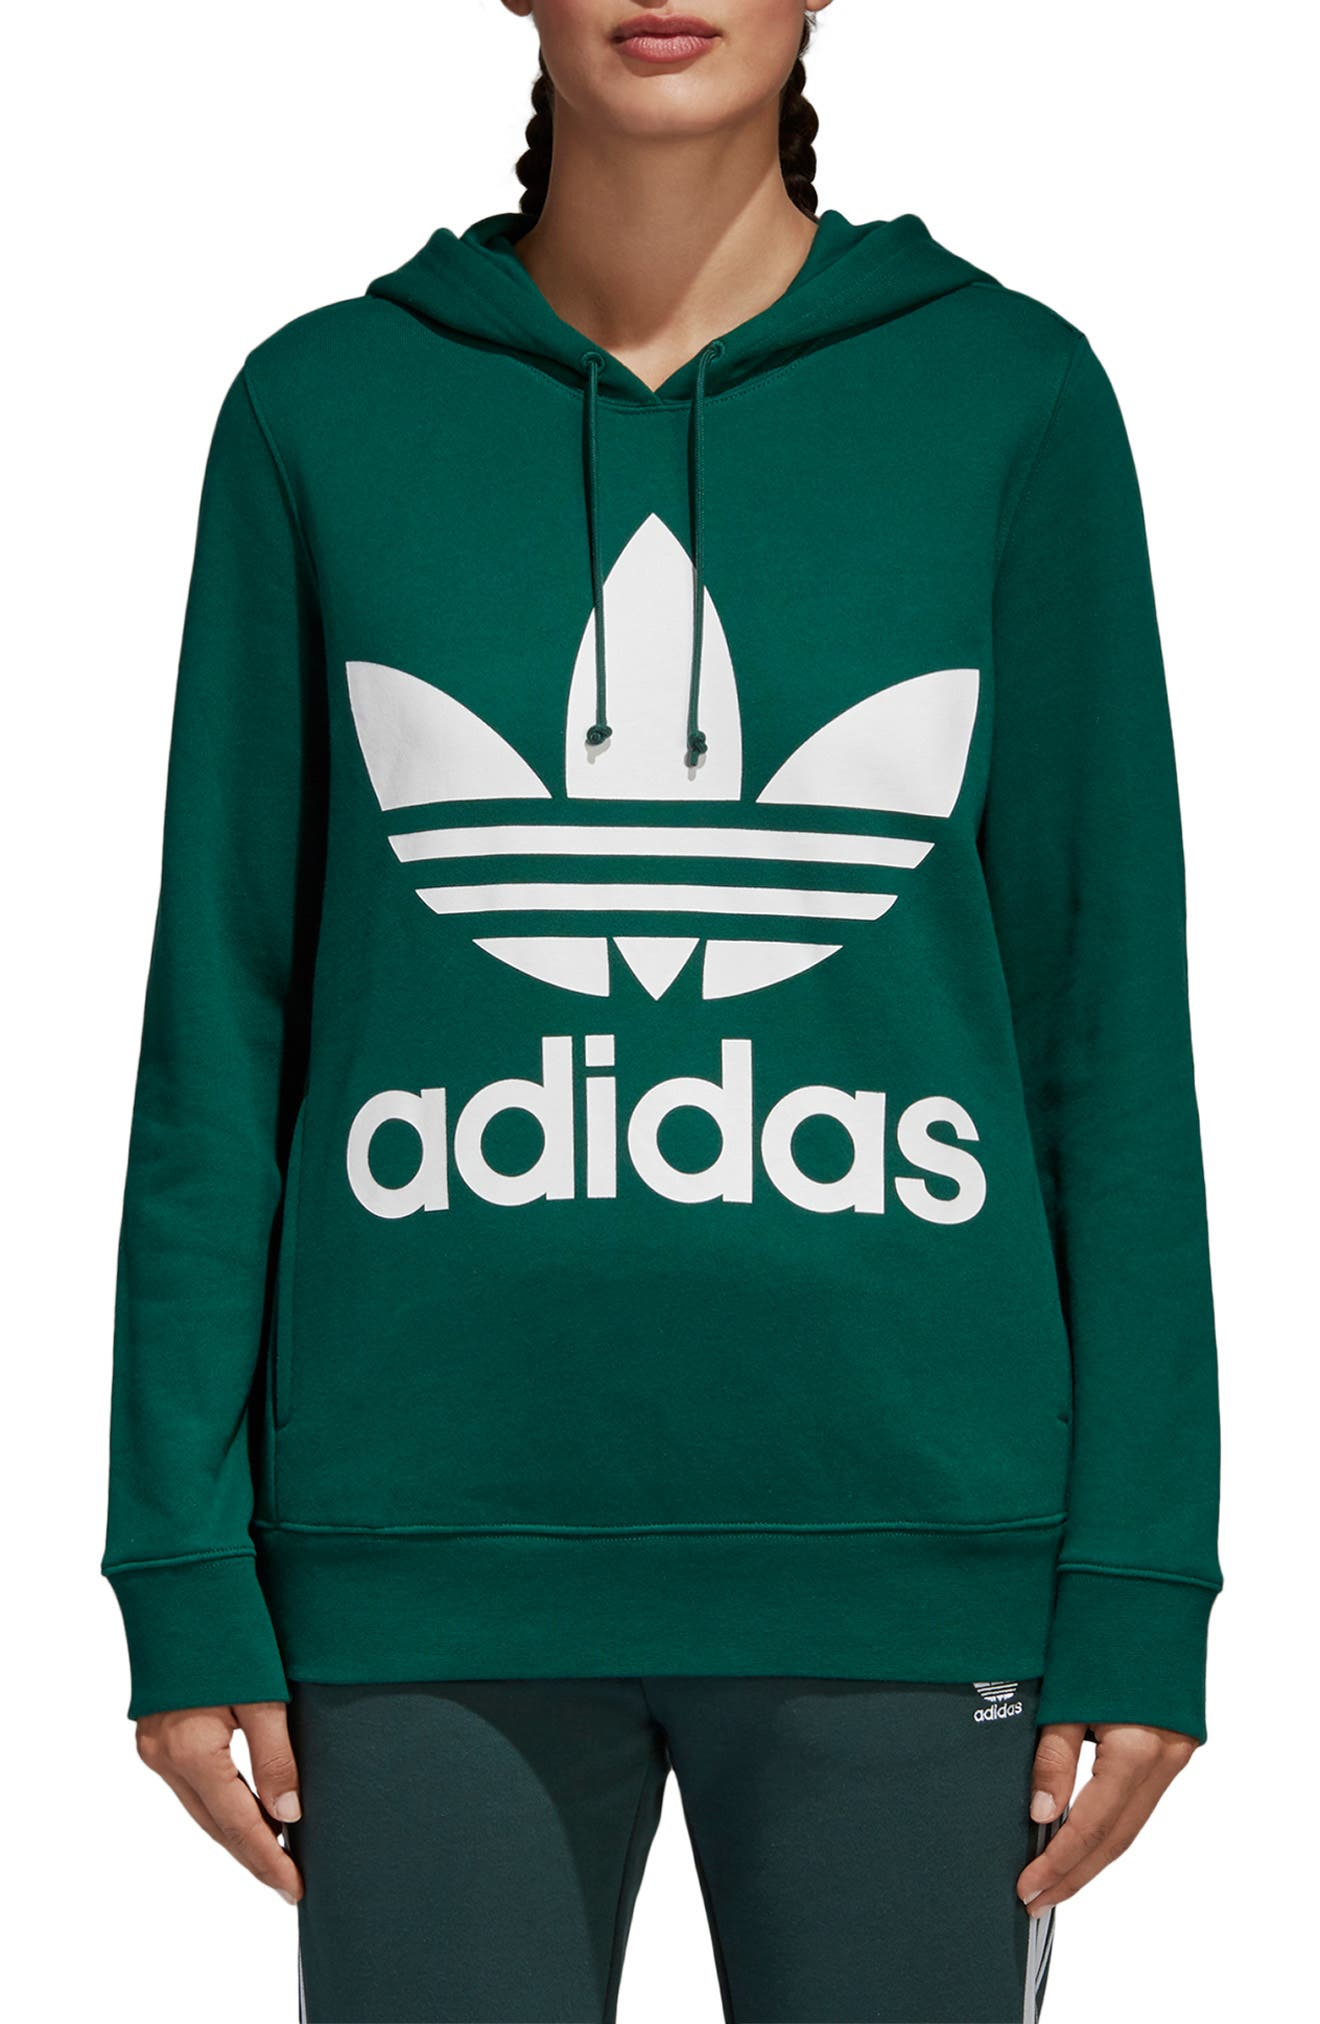 ADIDAS ORIGINALS adidas Trefoil Logo Hoodie, Main, color, COLLEGIATE GREEN